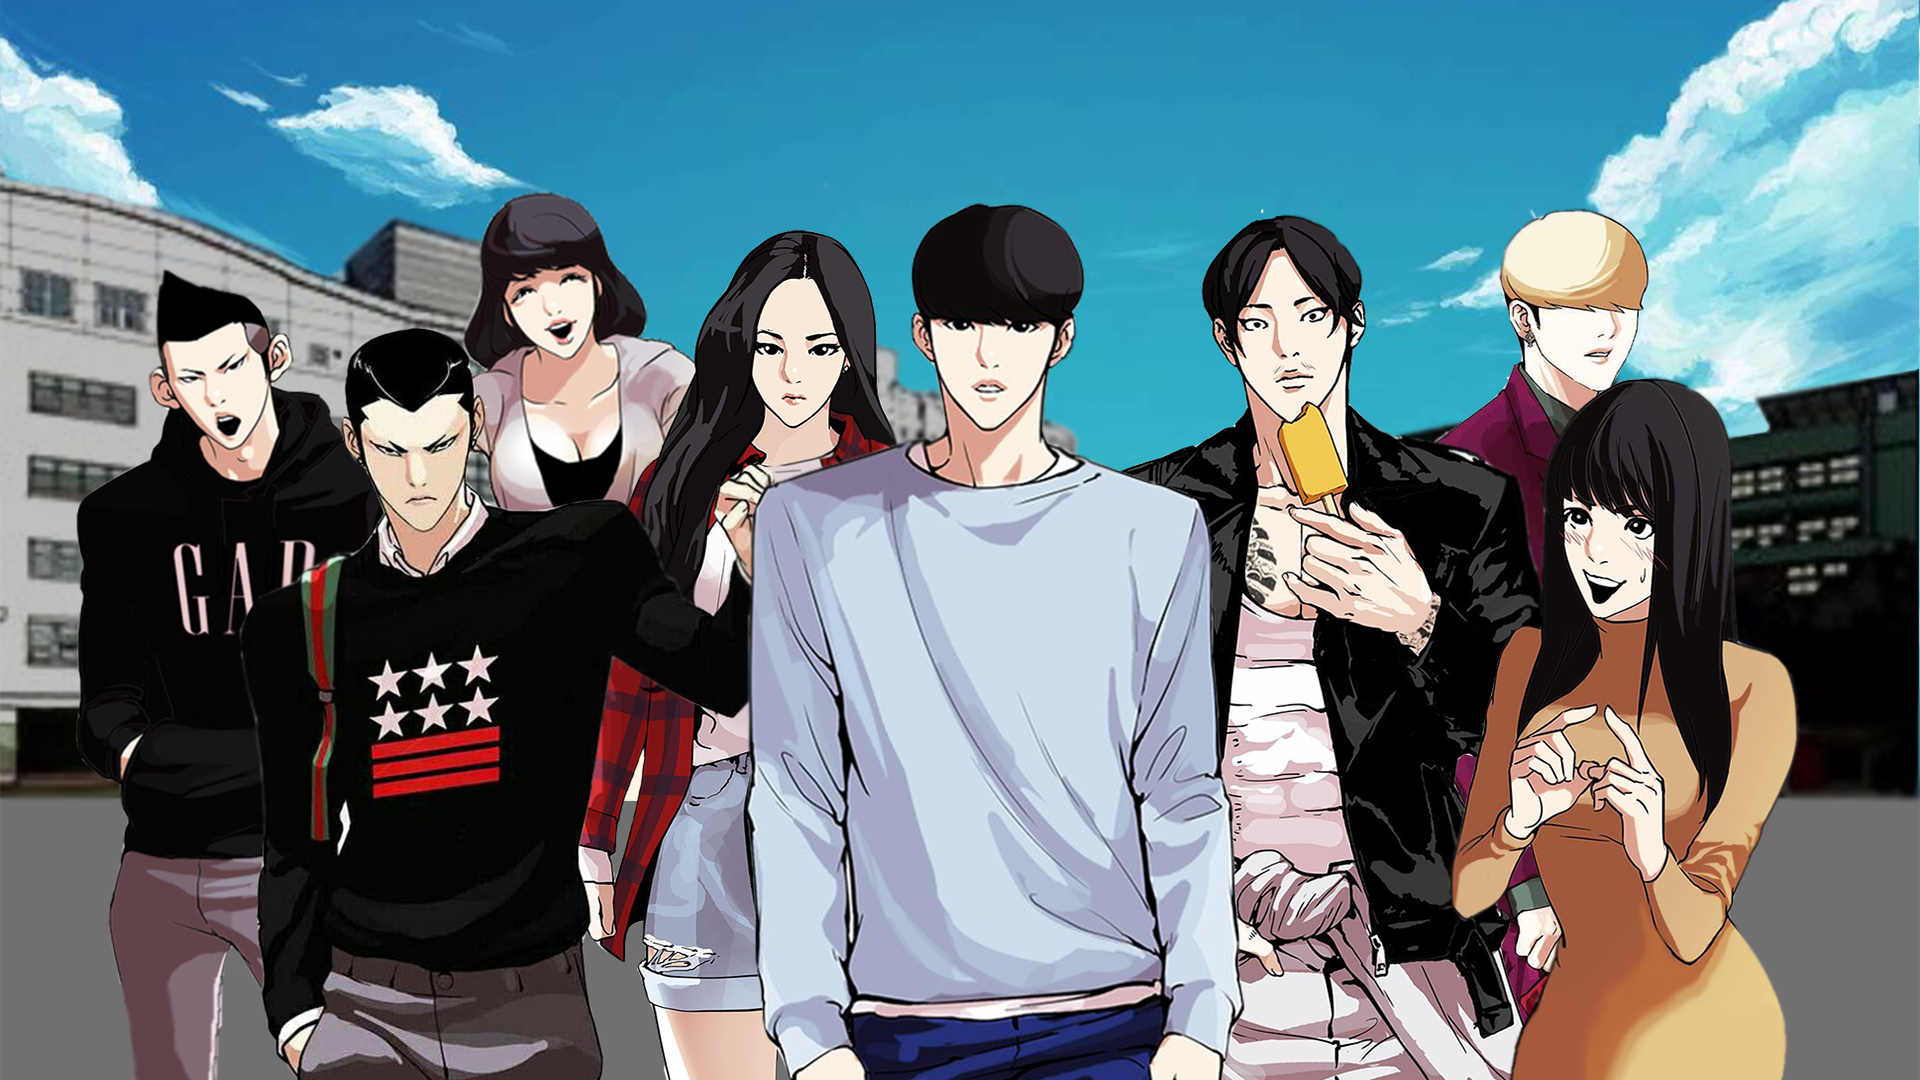 116-1168735_lookism-webtoon